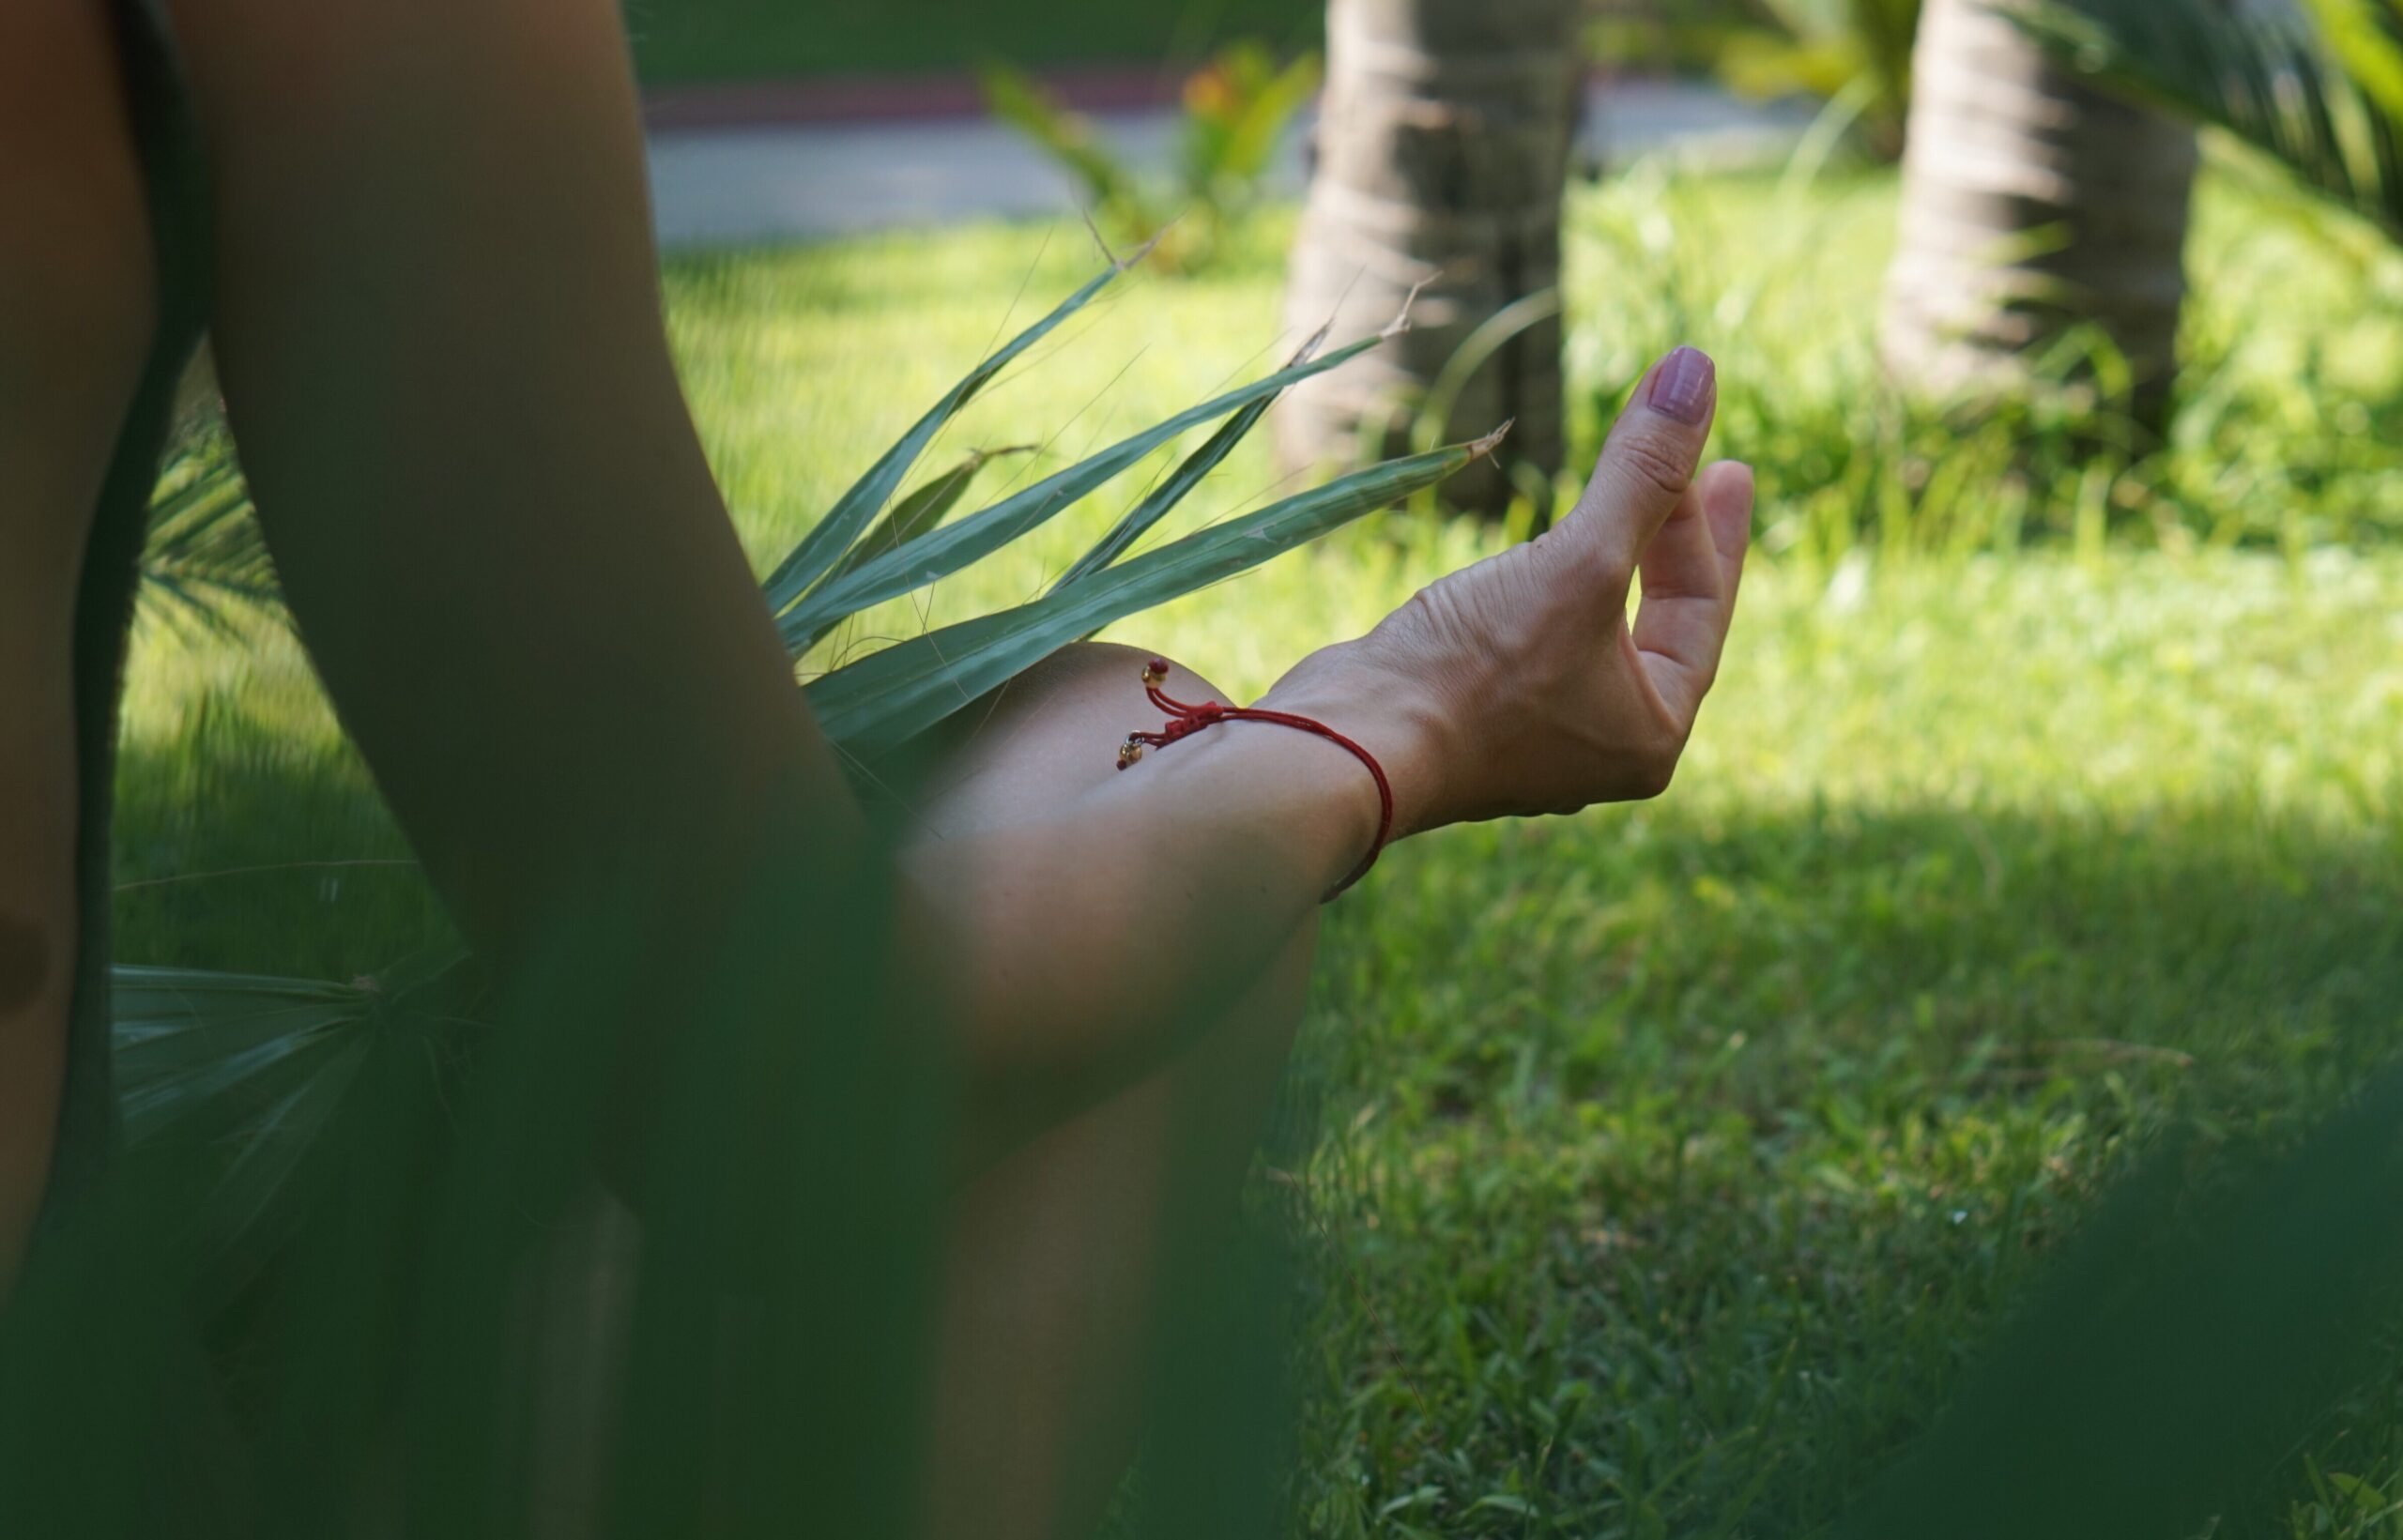 Yogatone - Life is a balance of holding and letting of holding and letting go